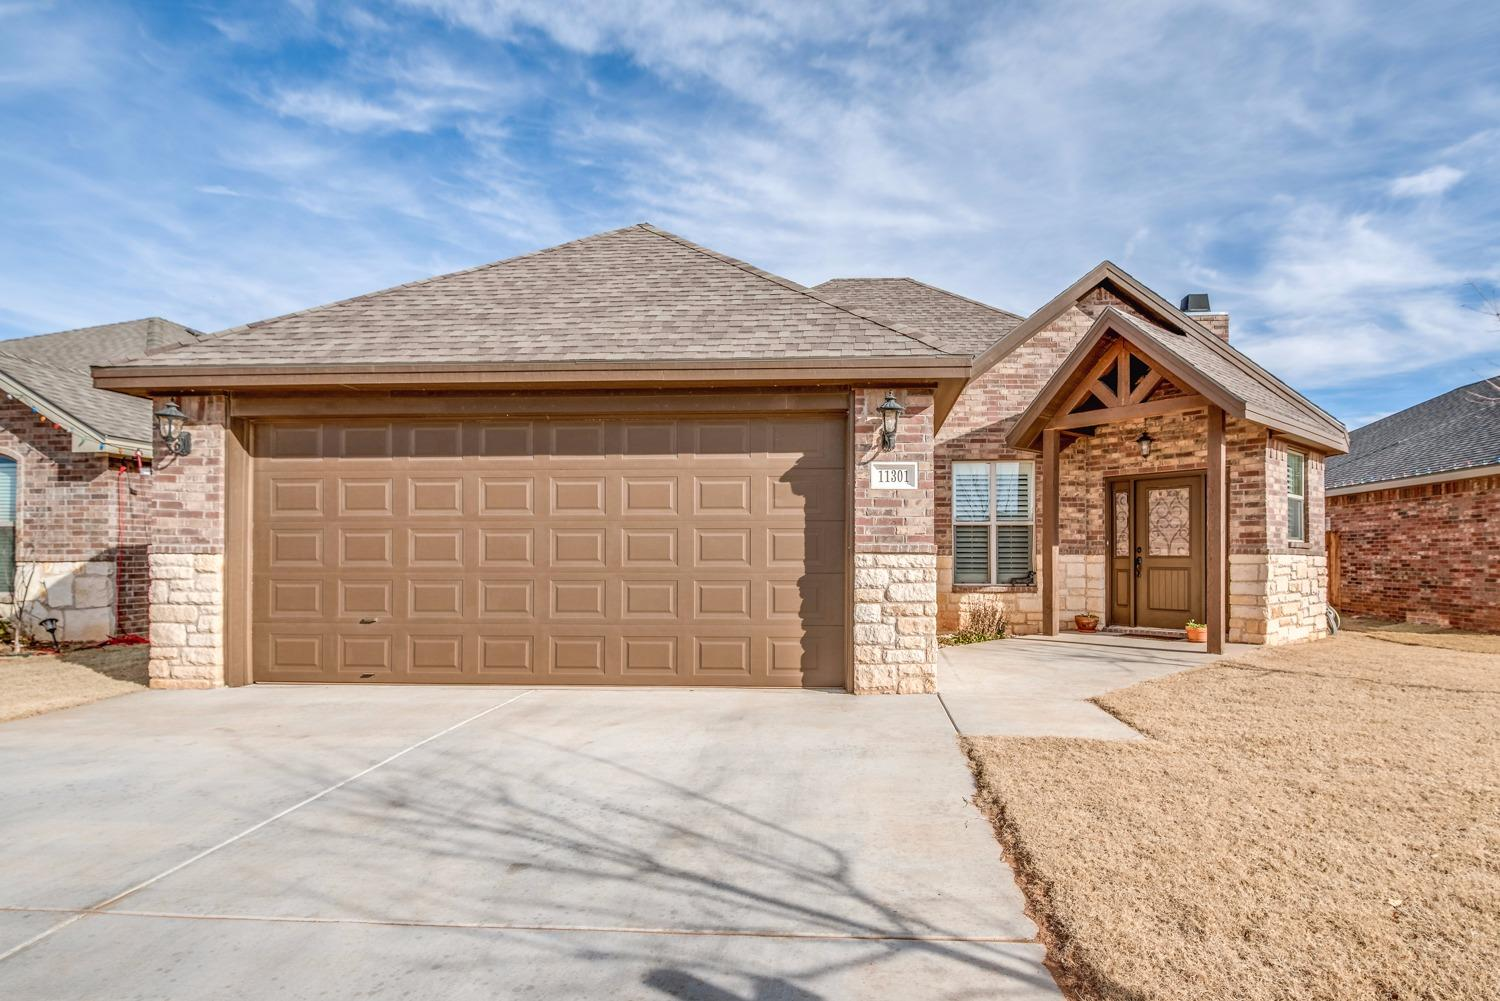 11301 Akron Avenue, Lubbock in Lubbock County, TX 79423 Home for Sale